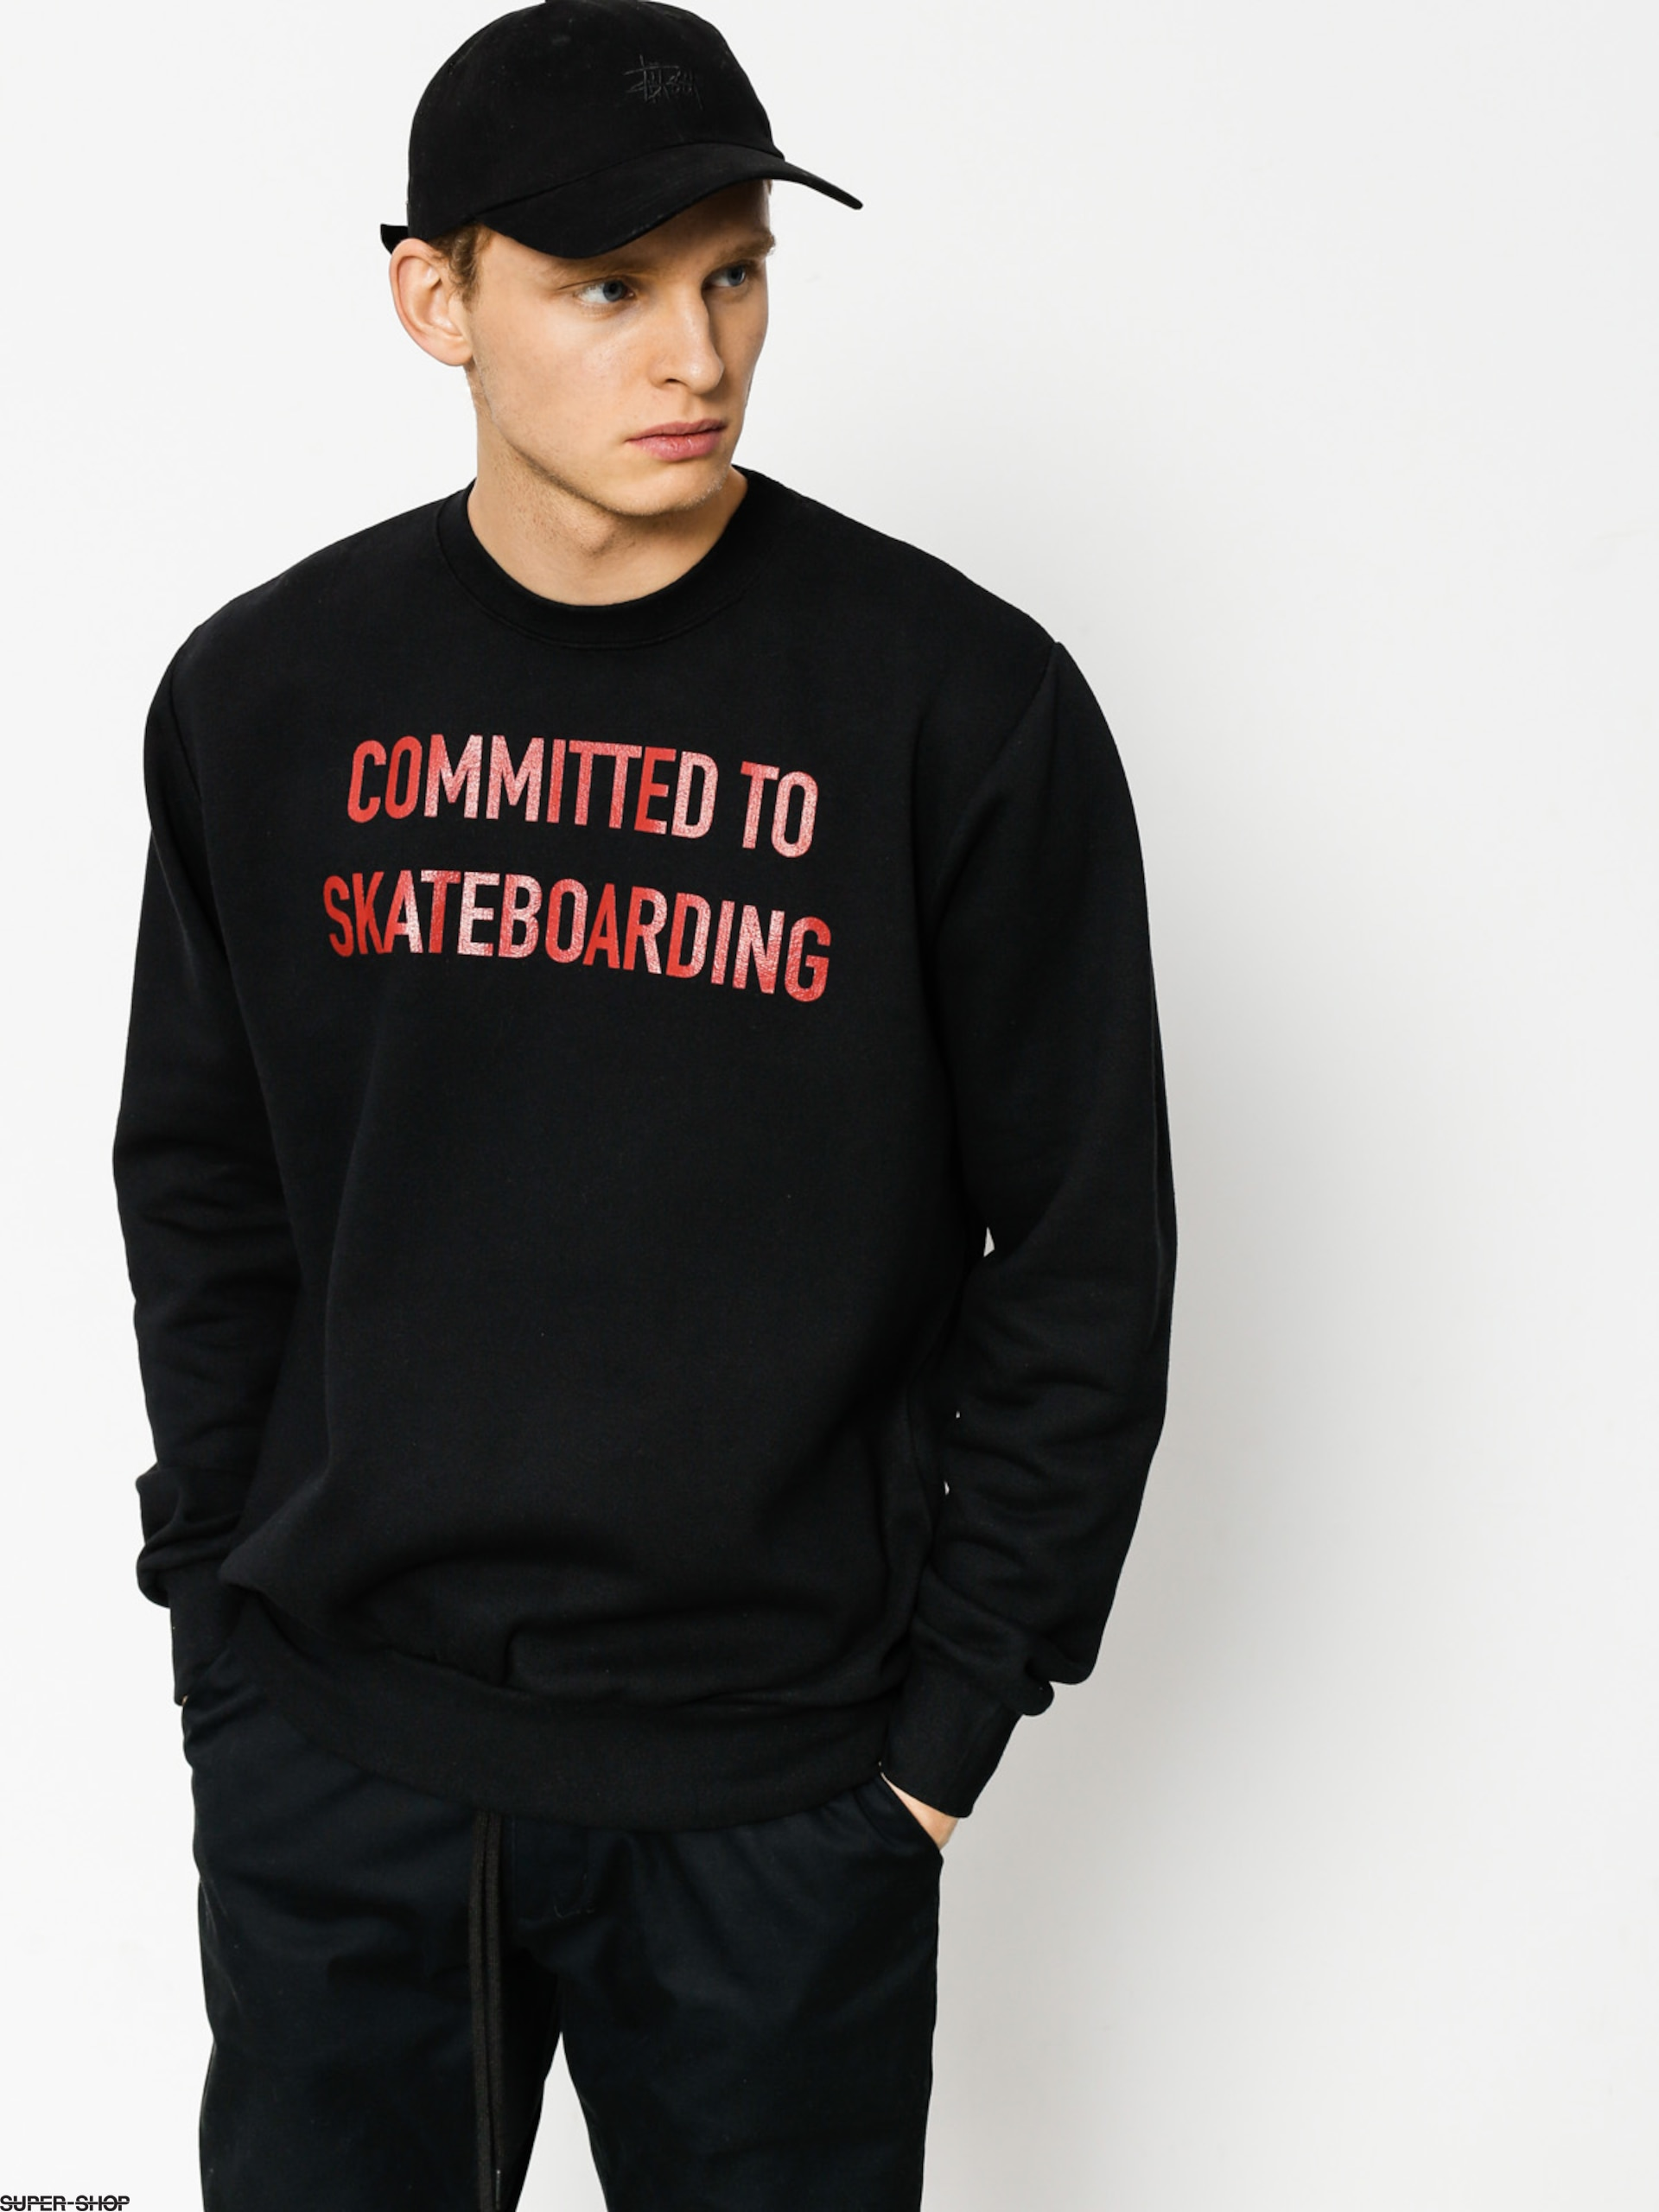 Circa Sweatshirt Committed